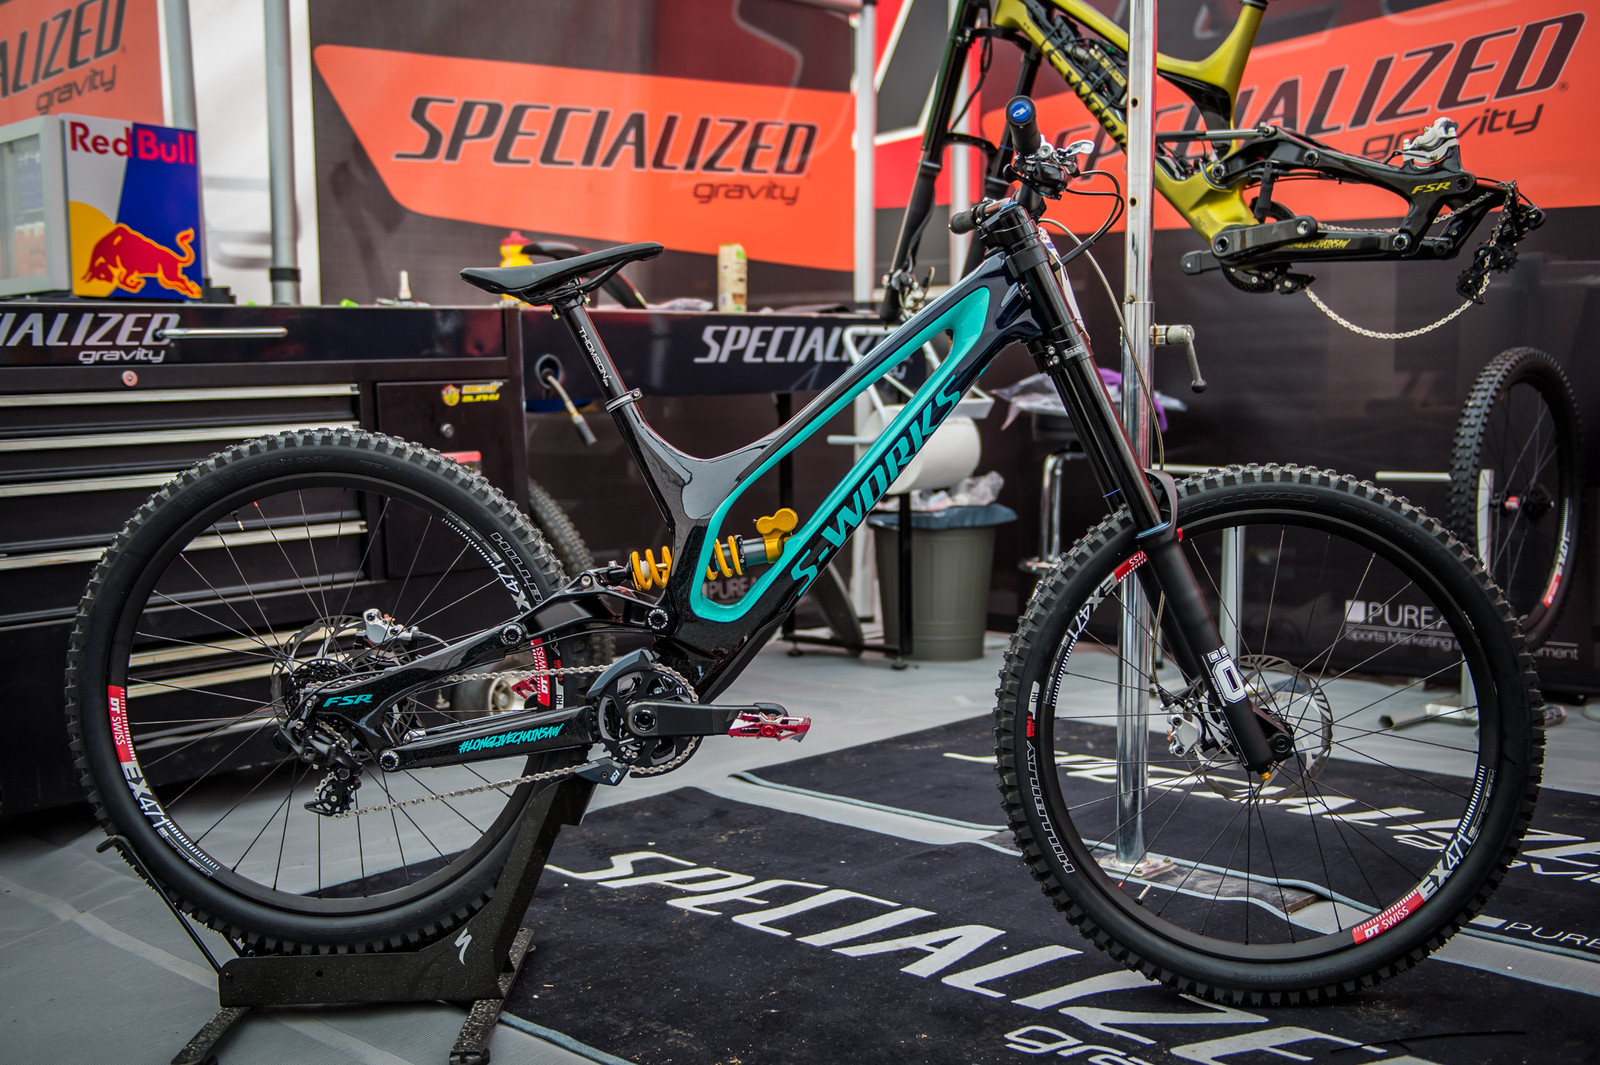 Specialized have hooked their team riders up with rad new paintjobs, and the mechanics spare no effort to make sure they're dialed. It's all in the details...